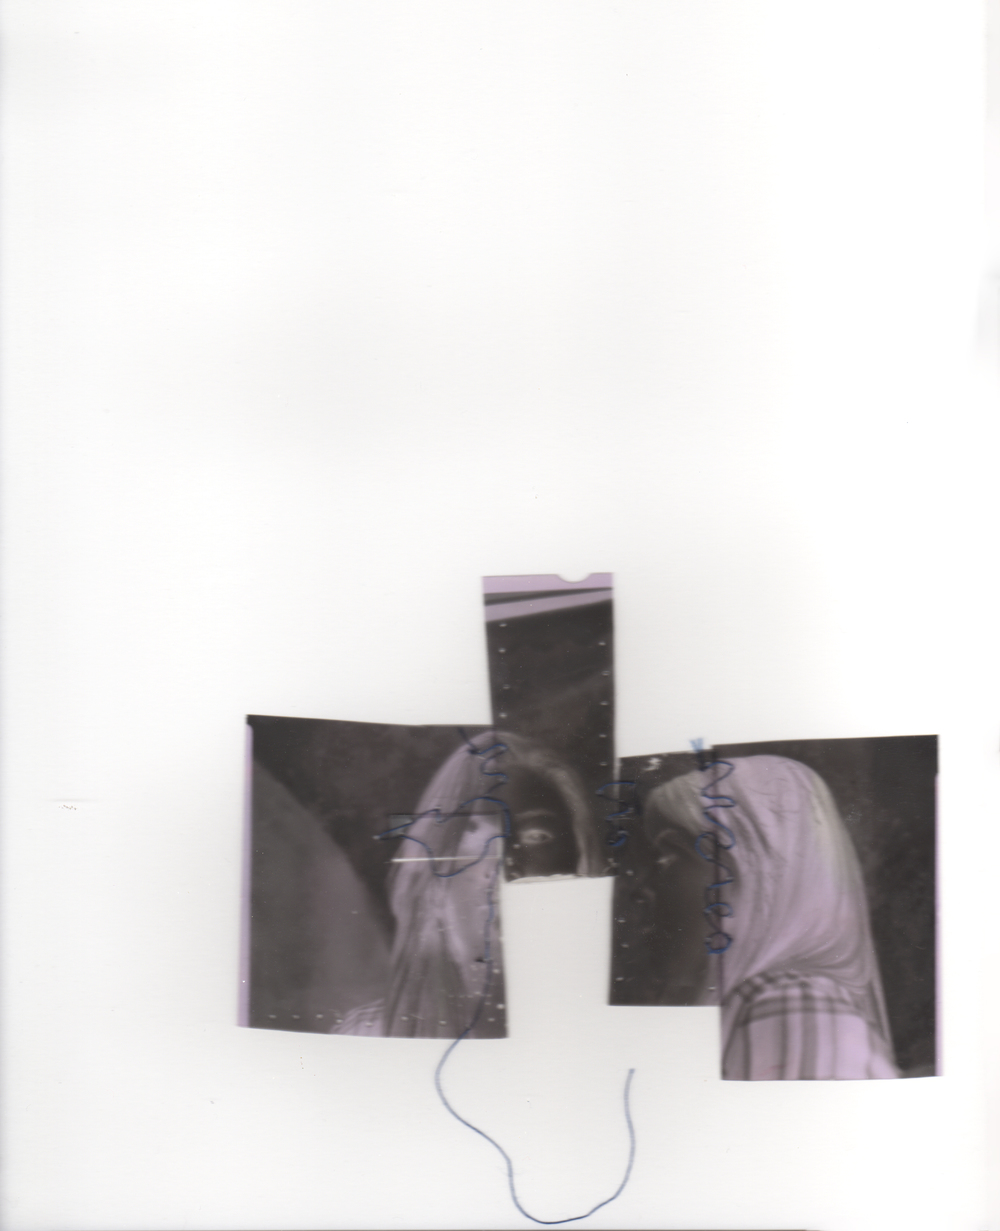 Ariana Brown, Stiched Negative 3, large format nagatives and thread, 8x10, Fall 2015.jpg